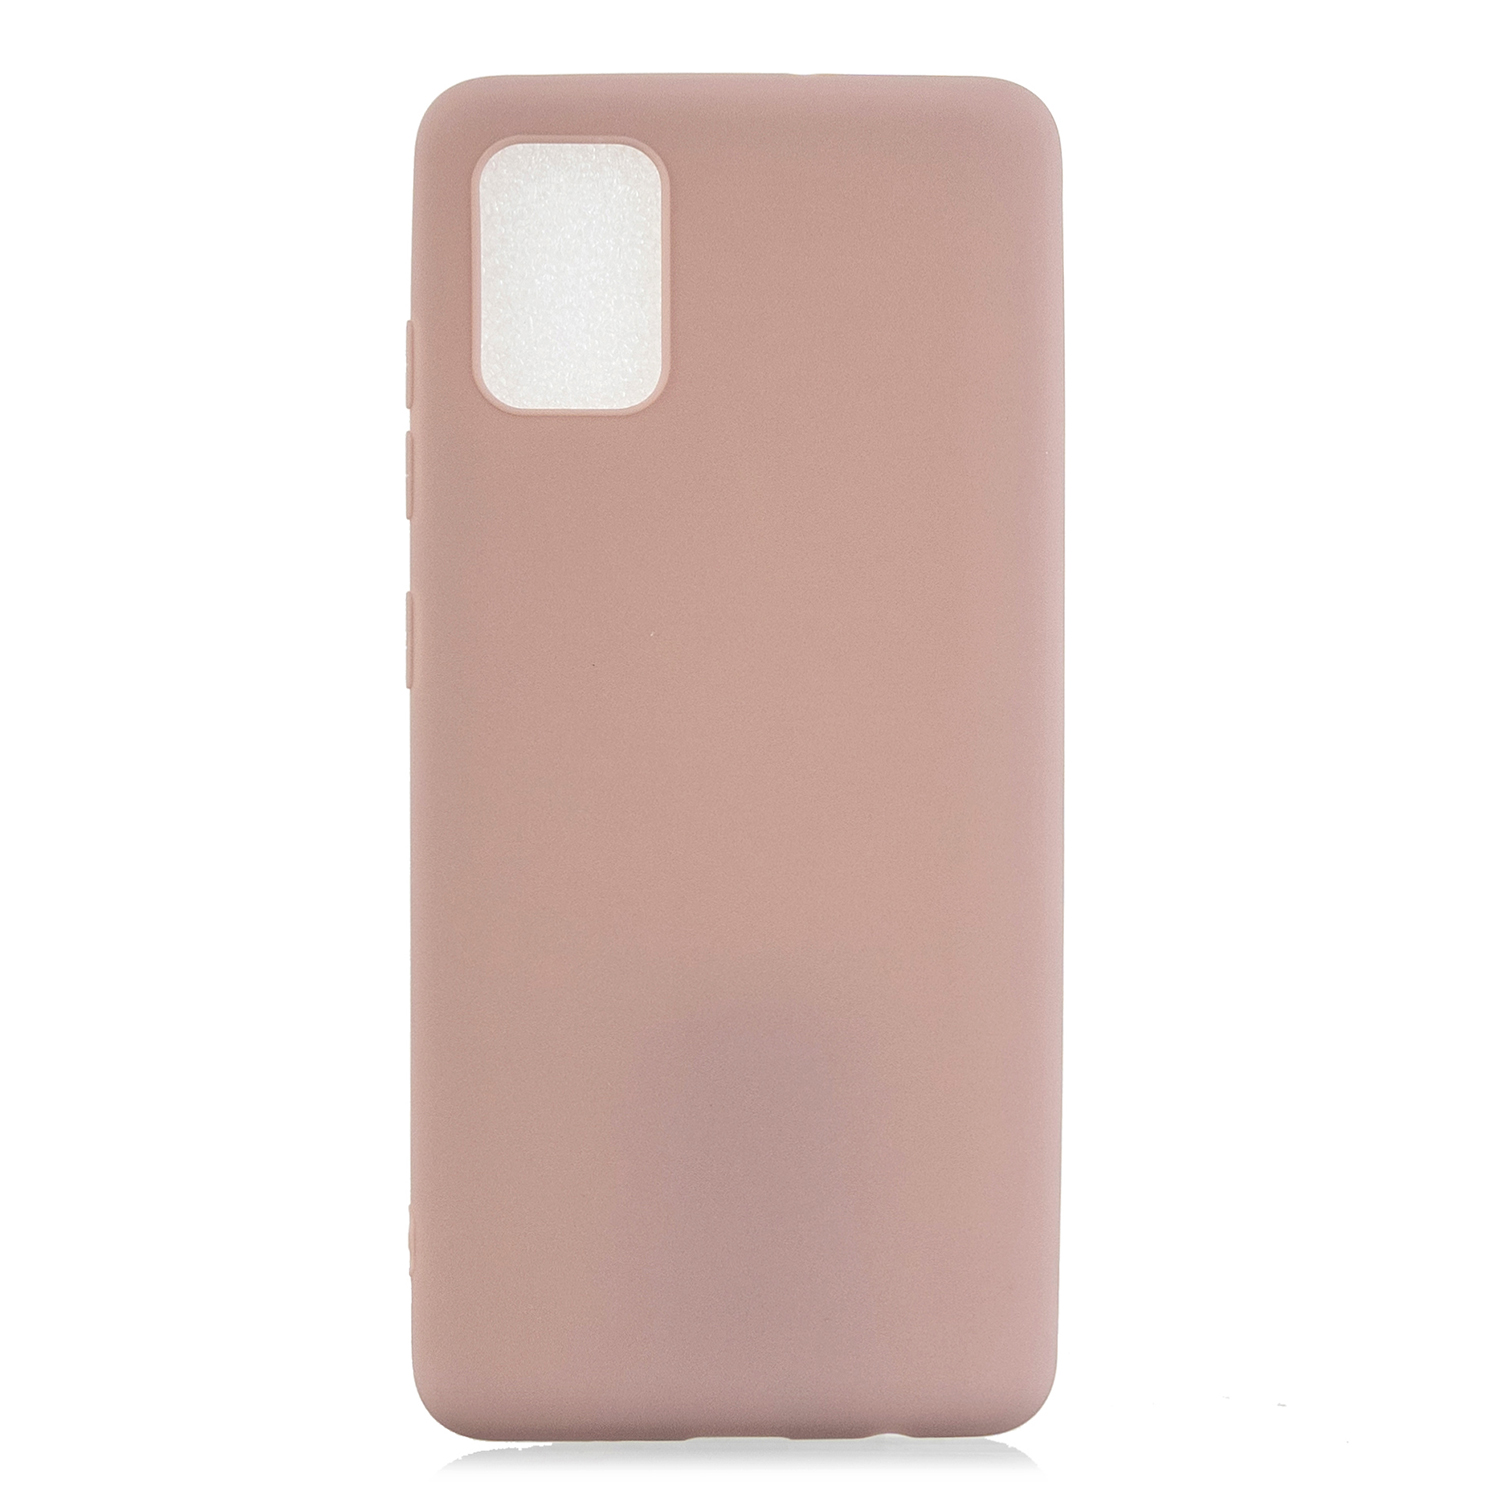 For Samsung A01/ A11/A21/A41/A51/A71/A81/A91 Mobile Phone Case Lovely Candy Color Matte TPU Anti-scratch Non-slip Protective Cover Back Case 11 lotus root pink